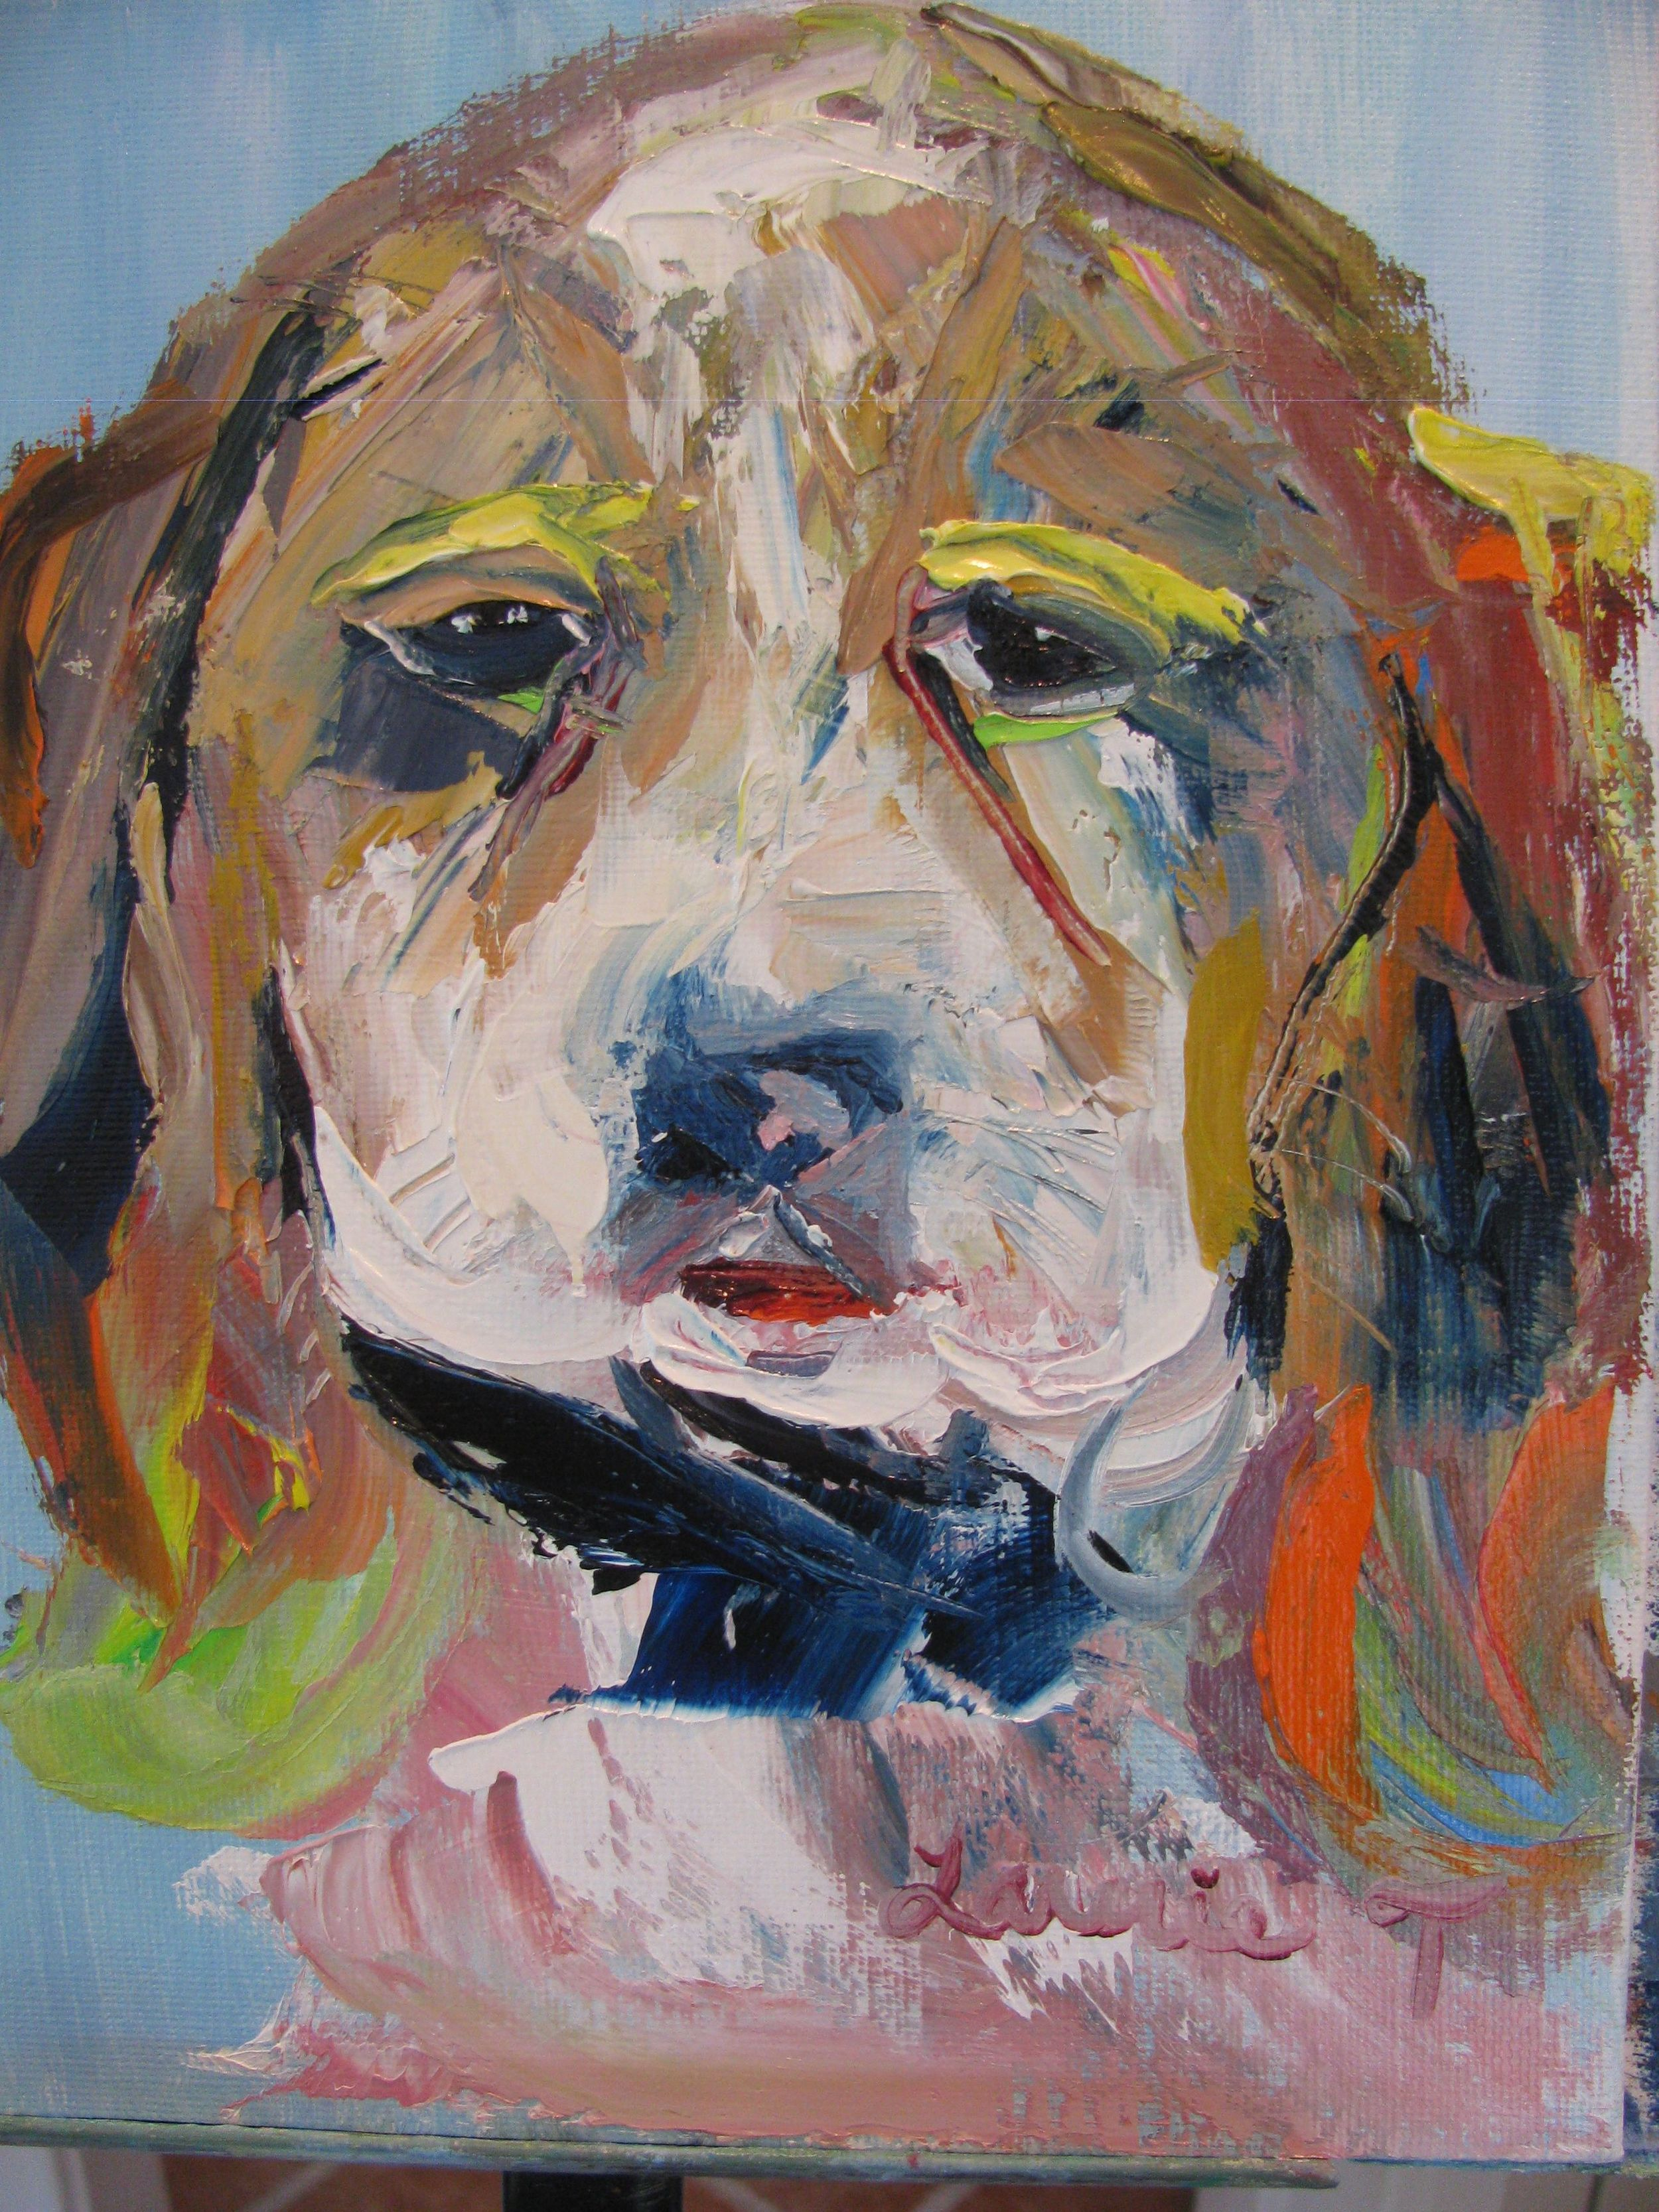 """""""Just framed my new portrait of Holly as a 3 month old puppy that was done by my friend Laurie Tuchel who does wonderful expressive pet portraits and I have hung it in my bedroom where I will see it each morning."""" - Lawrence, 2014"""